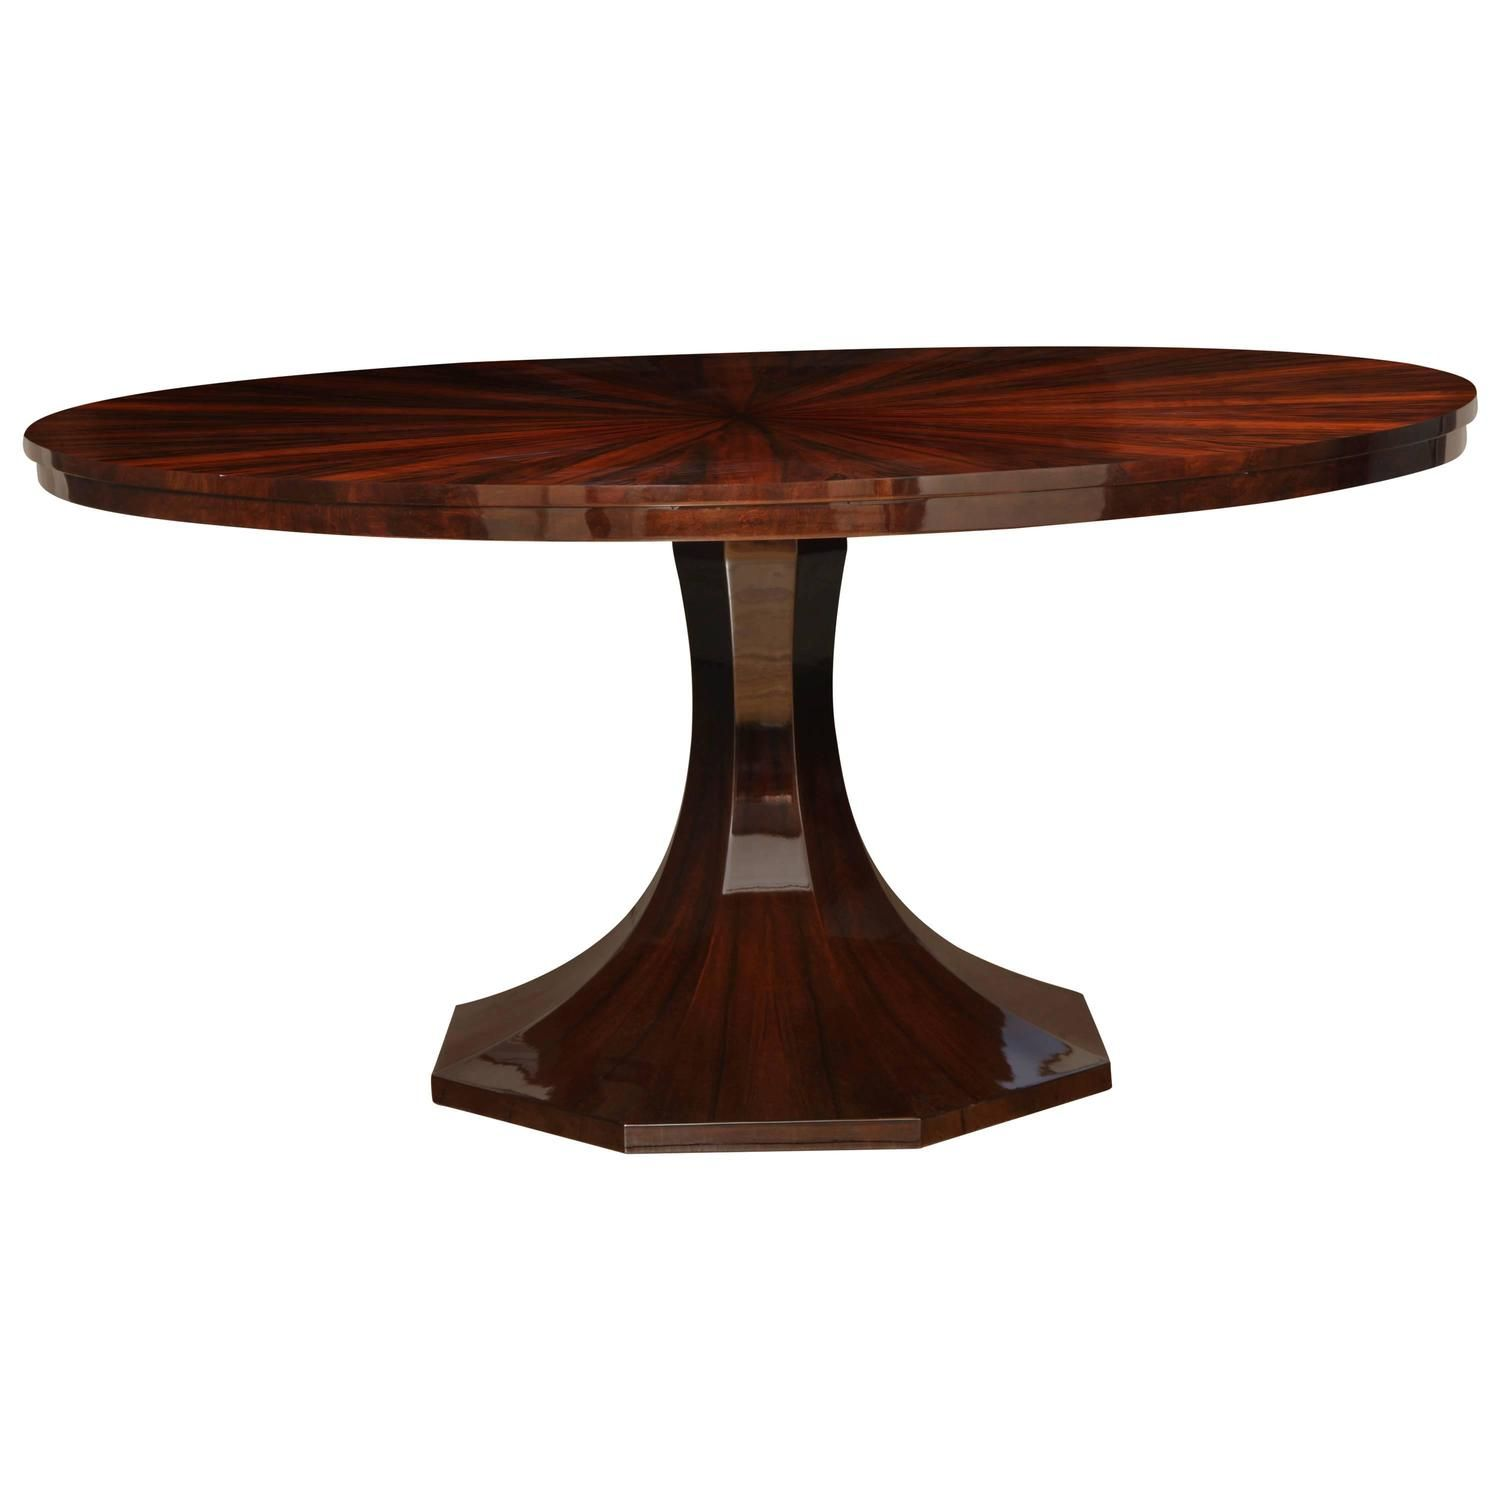 art deco round pedestal dining table in black forest walnut circa